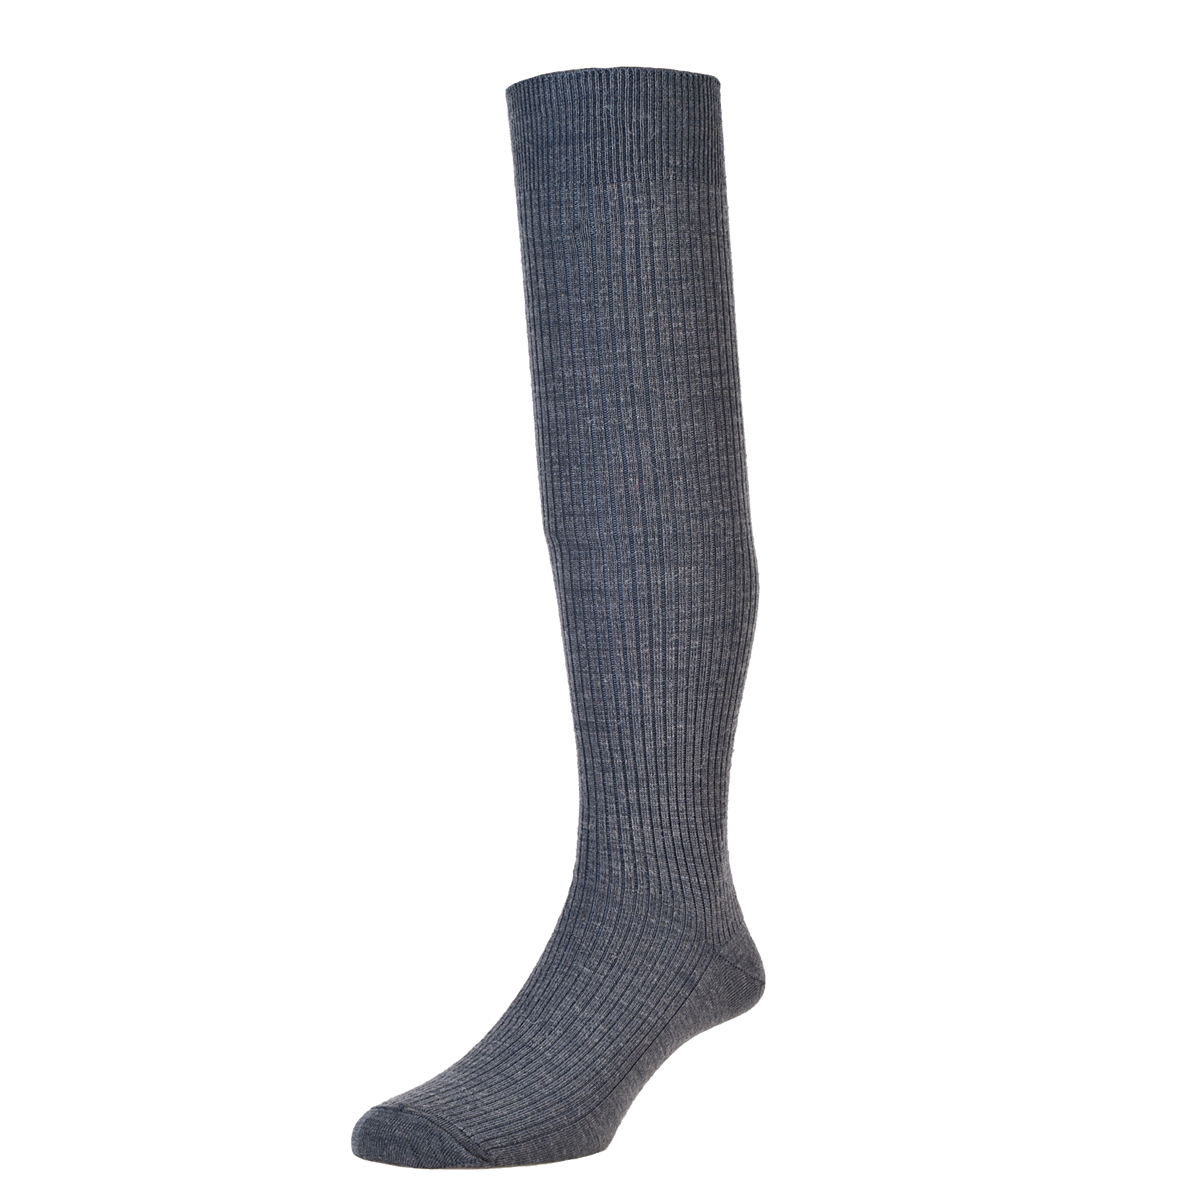 HJ Hall Immaculate Long Knee length Socks, 6-11UK Mid-Grey HJ77